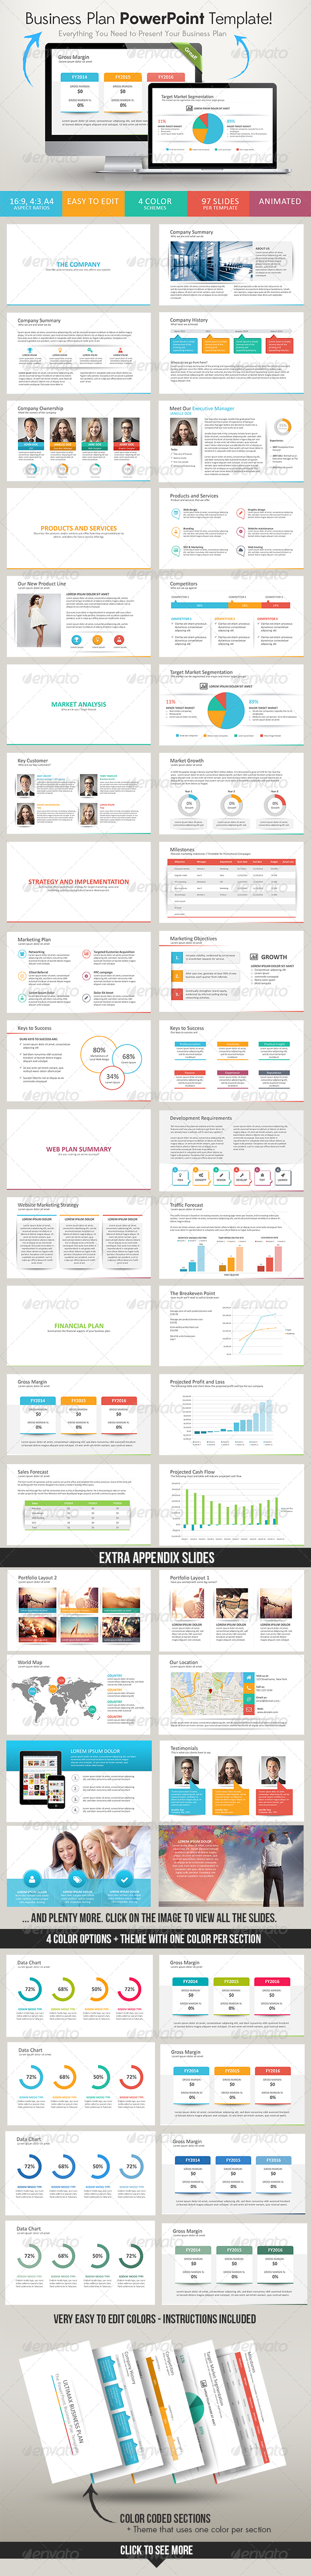 Ultimax Business Plan PowerPoint Template